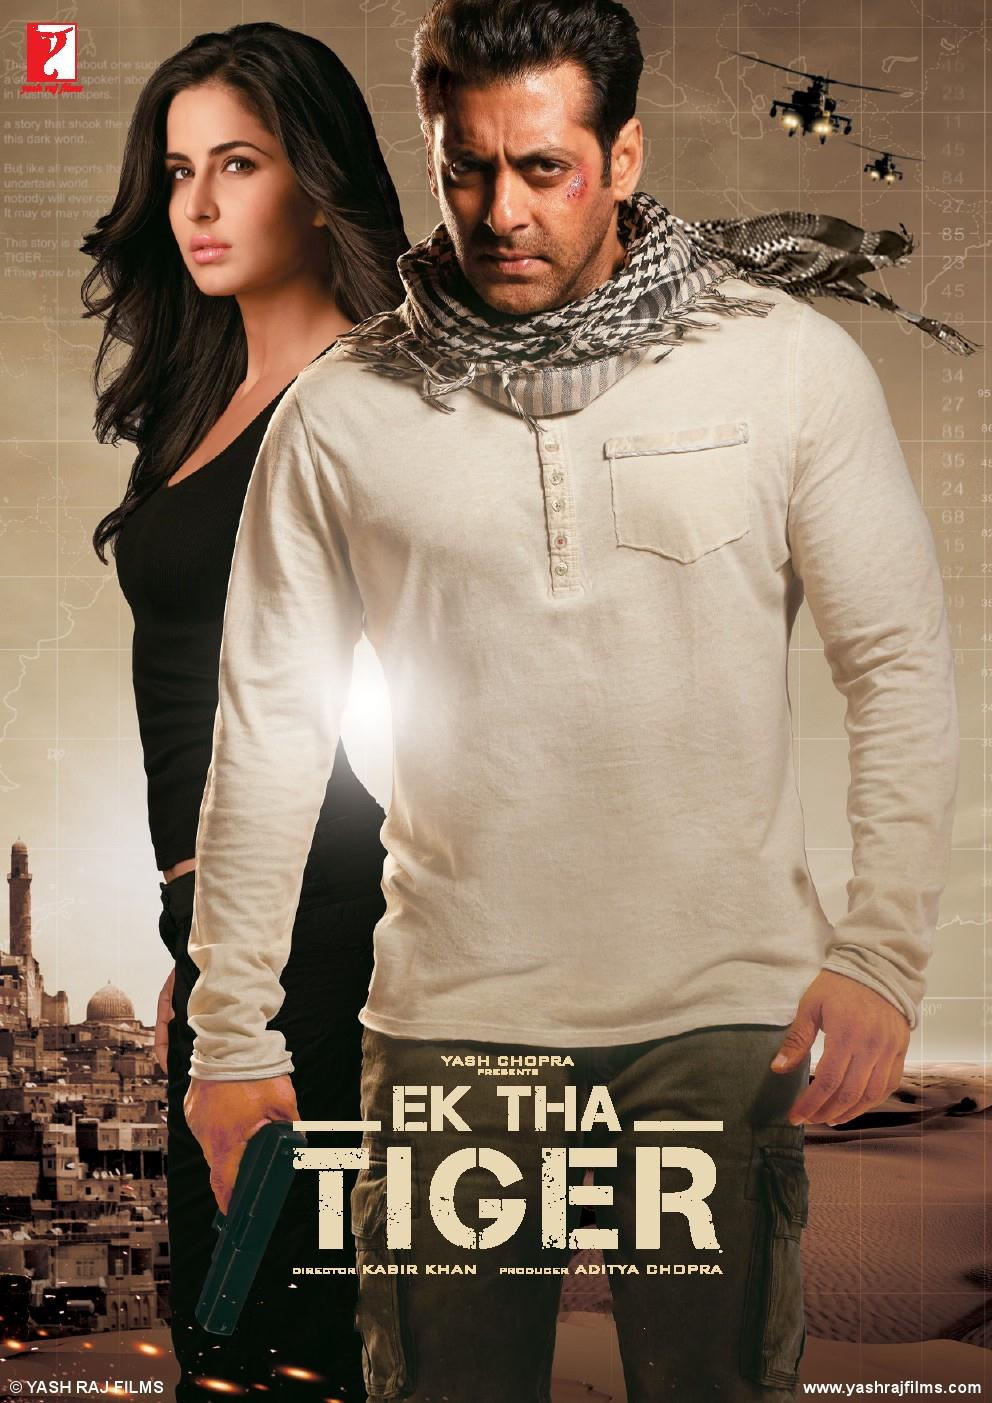 Ek Tha Tiger poster is copied from Uncharted 3 (Video Game)